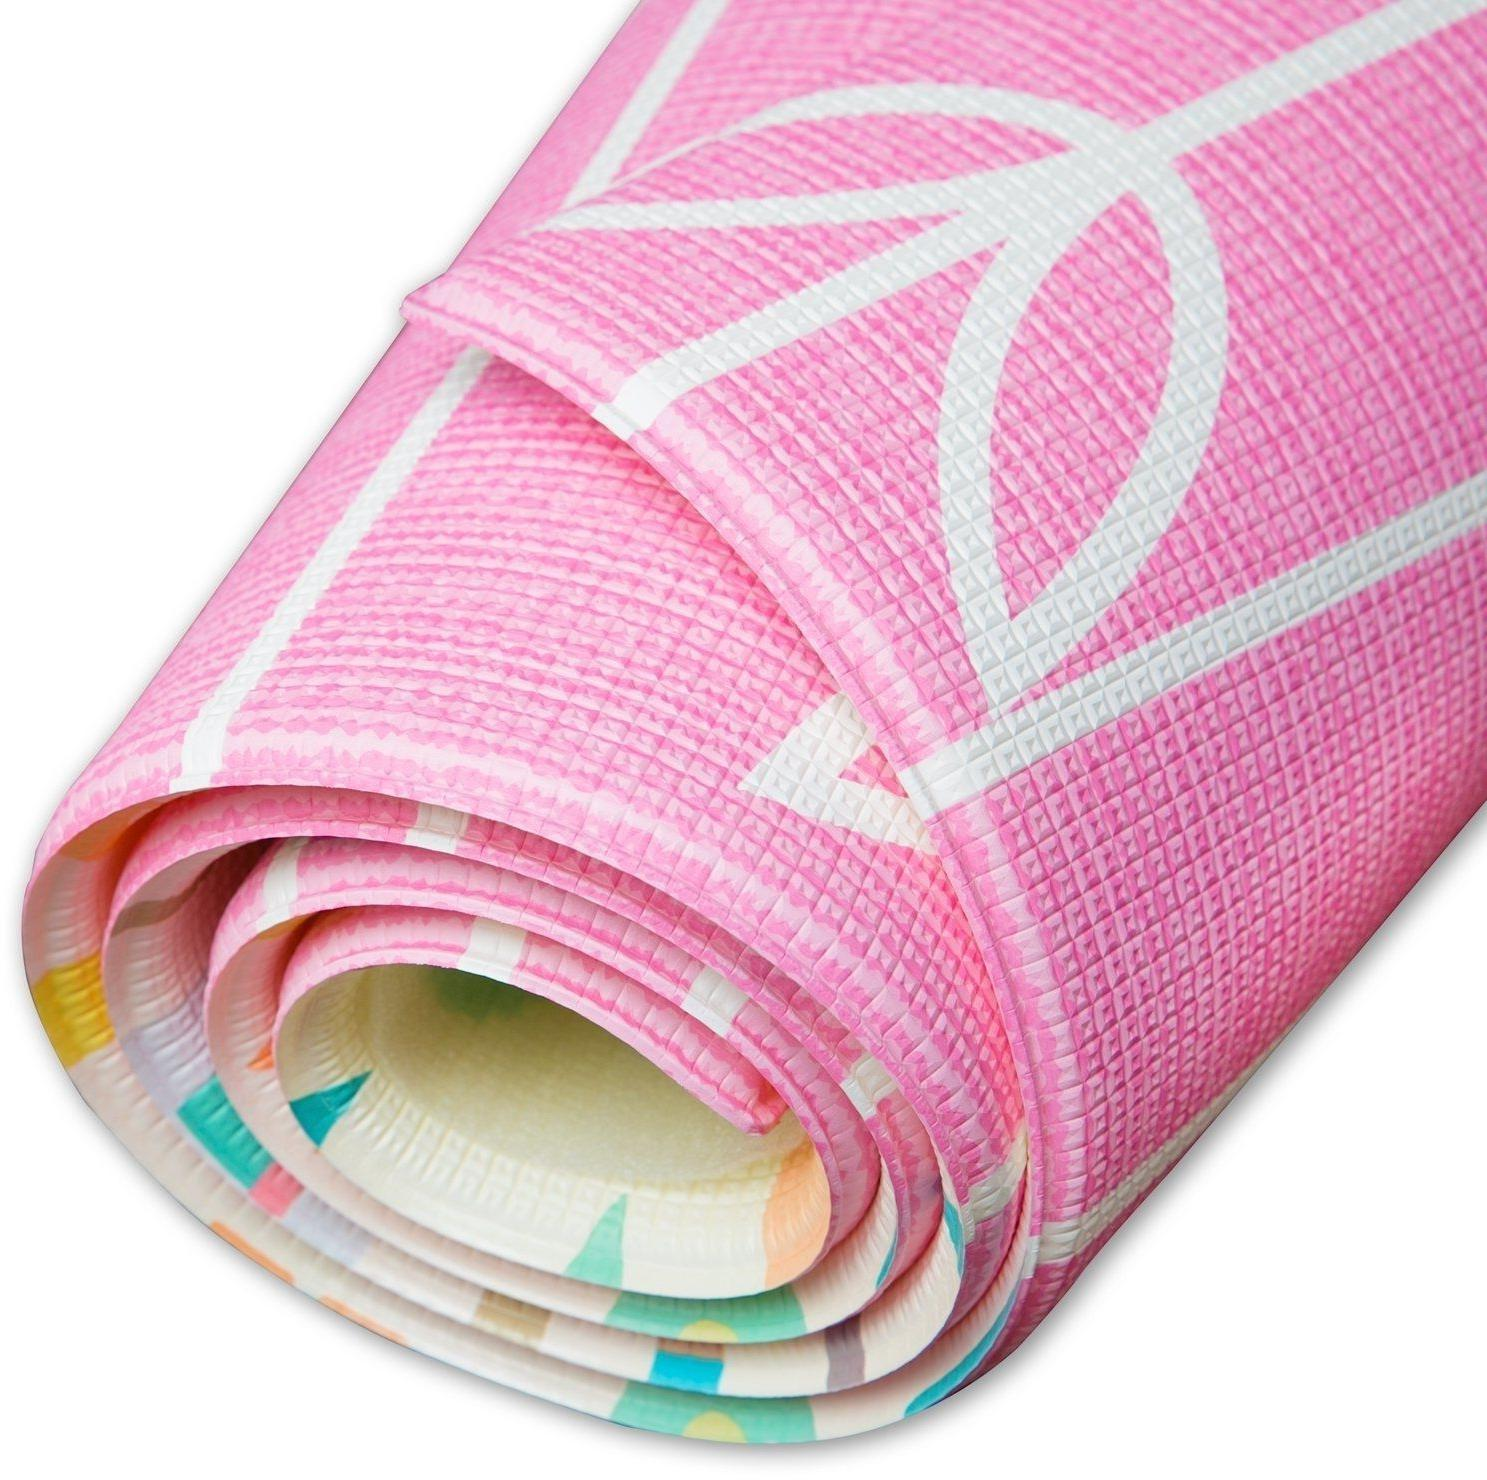 Baby PlayMat Haute Large Pink Baby Care 7' 4.5'